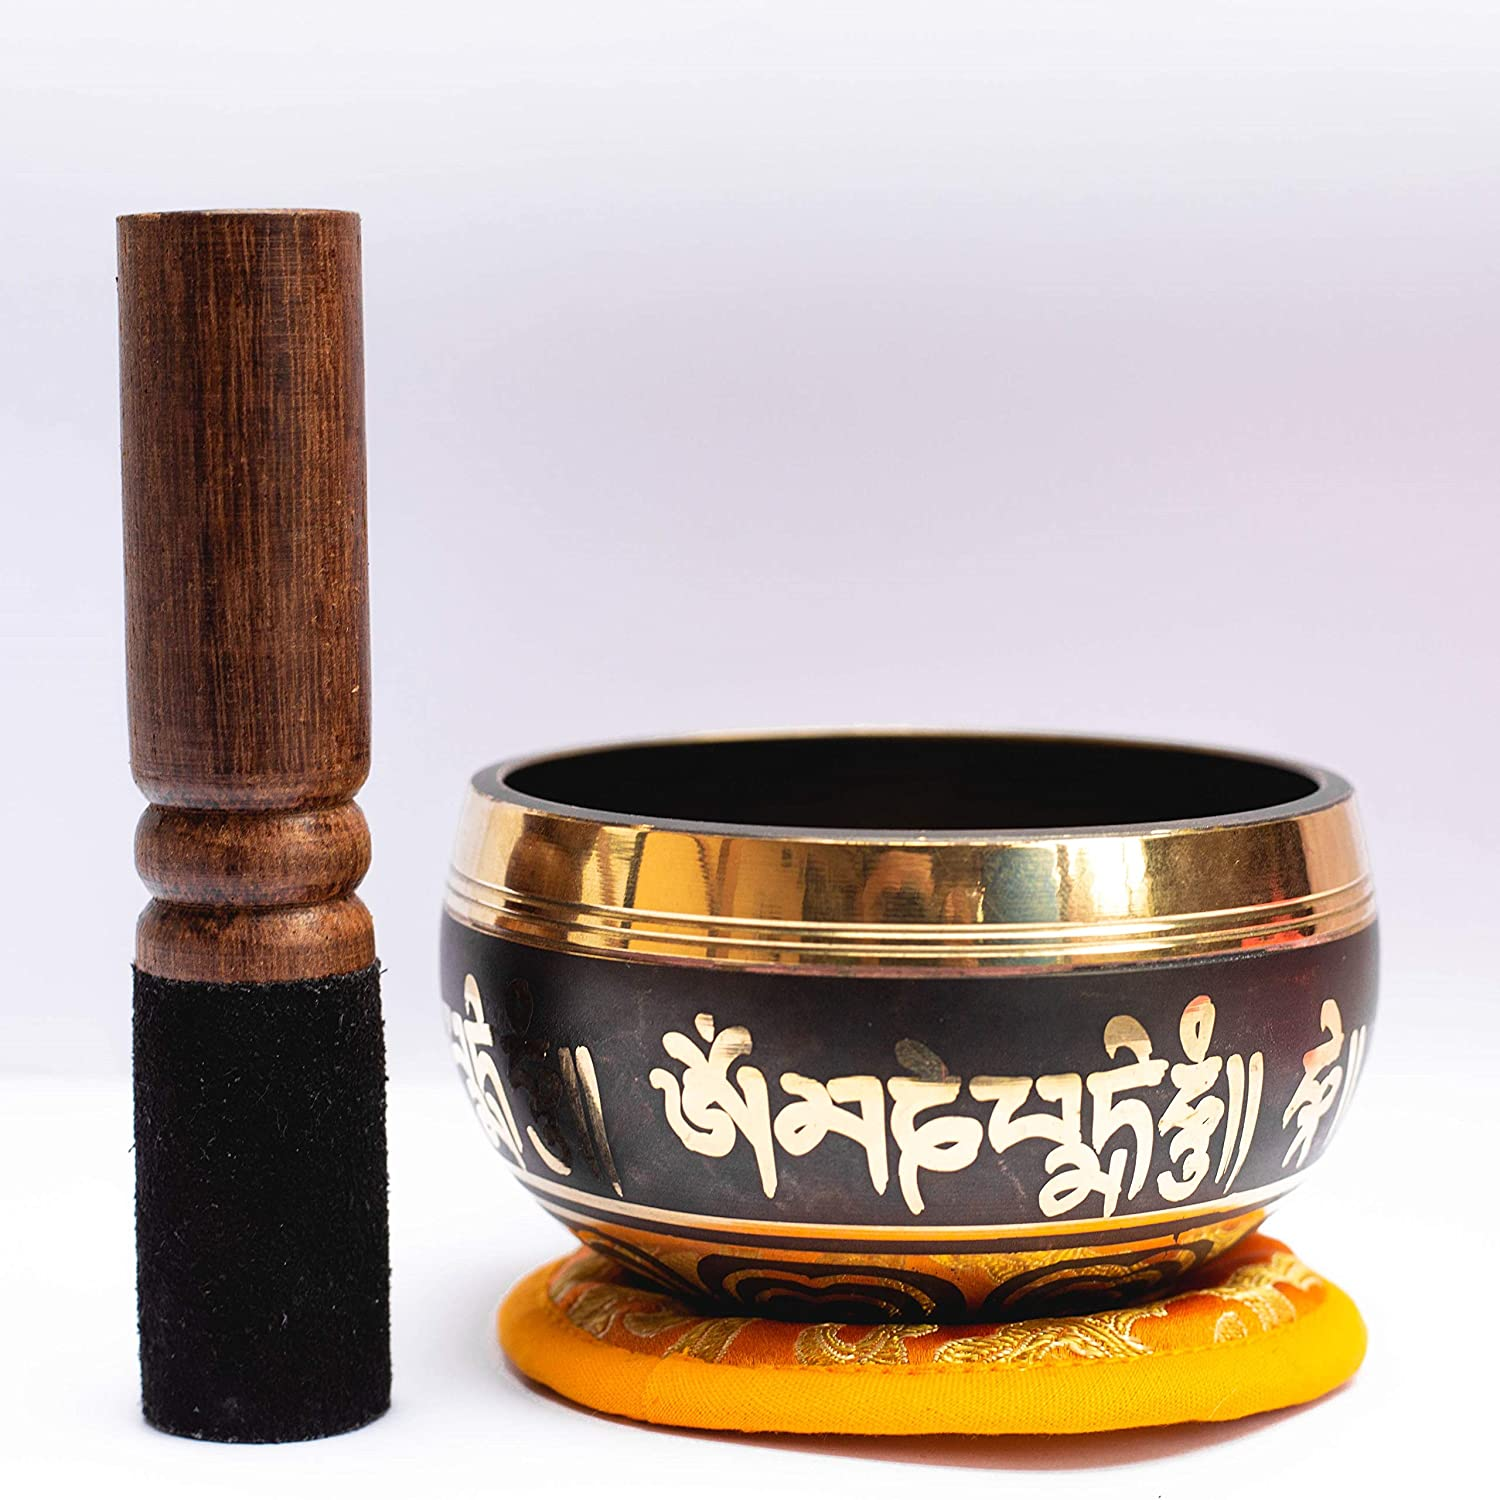 Tibetan Singing Bowl Set With Wooden Mallet & Cushion For Yoga -Meditation-Sound Healing -Feng Shui -Reiki With Mantra Etching By Nepalese Craftsman-Ideal Gift